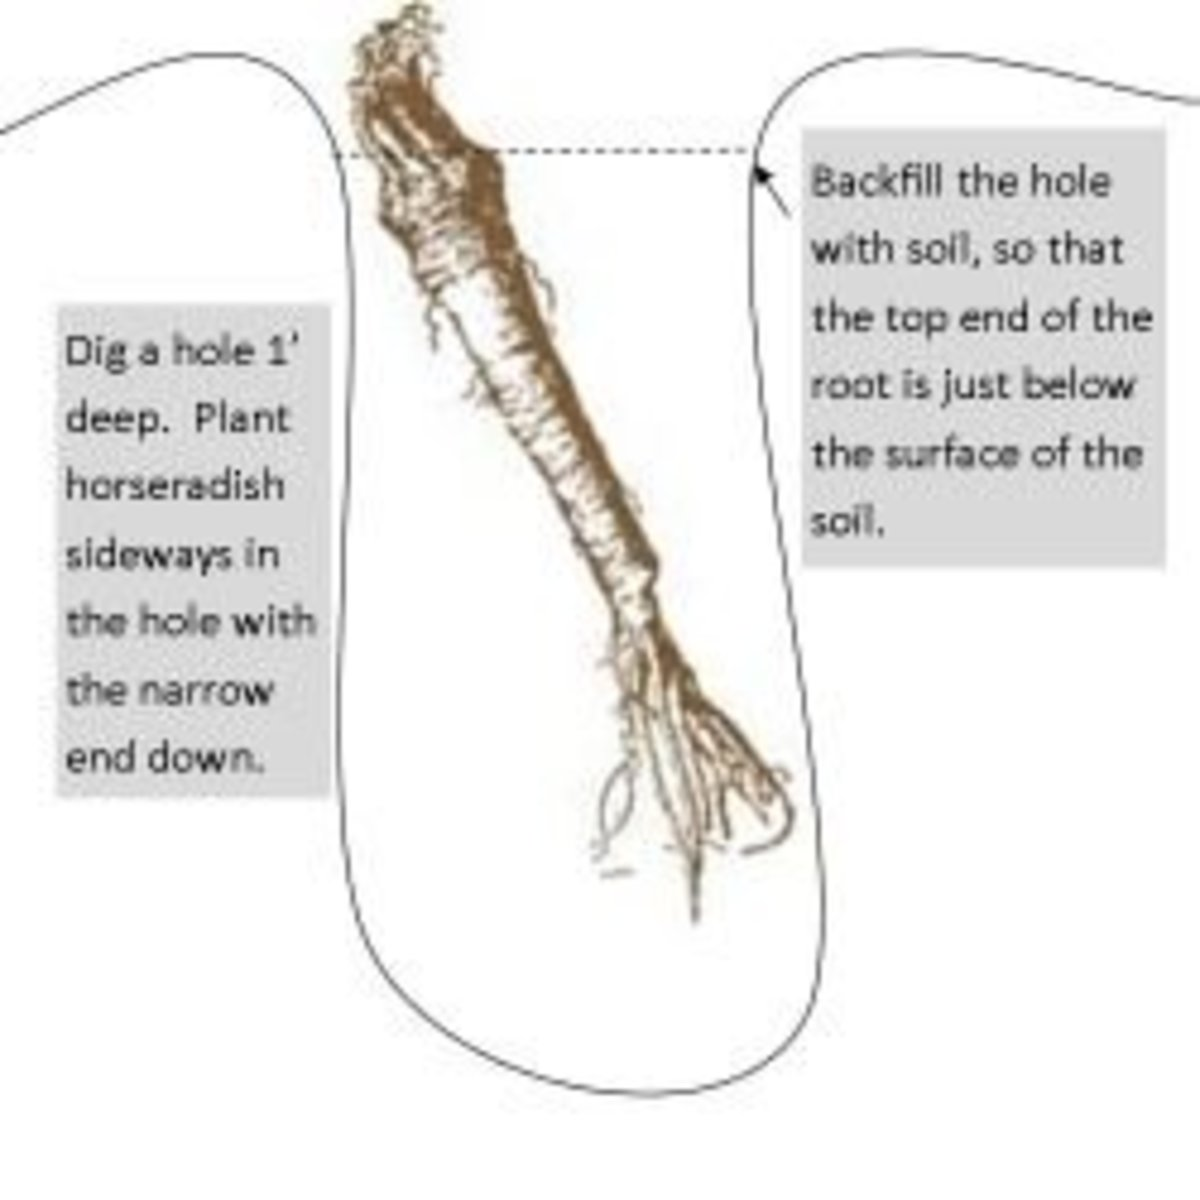 Here's a helpful little diagram to illustrate how to plant horseradish.